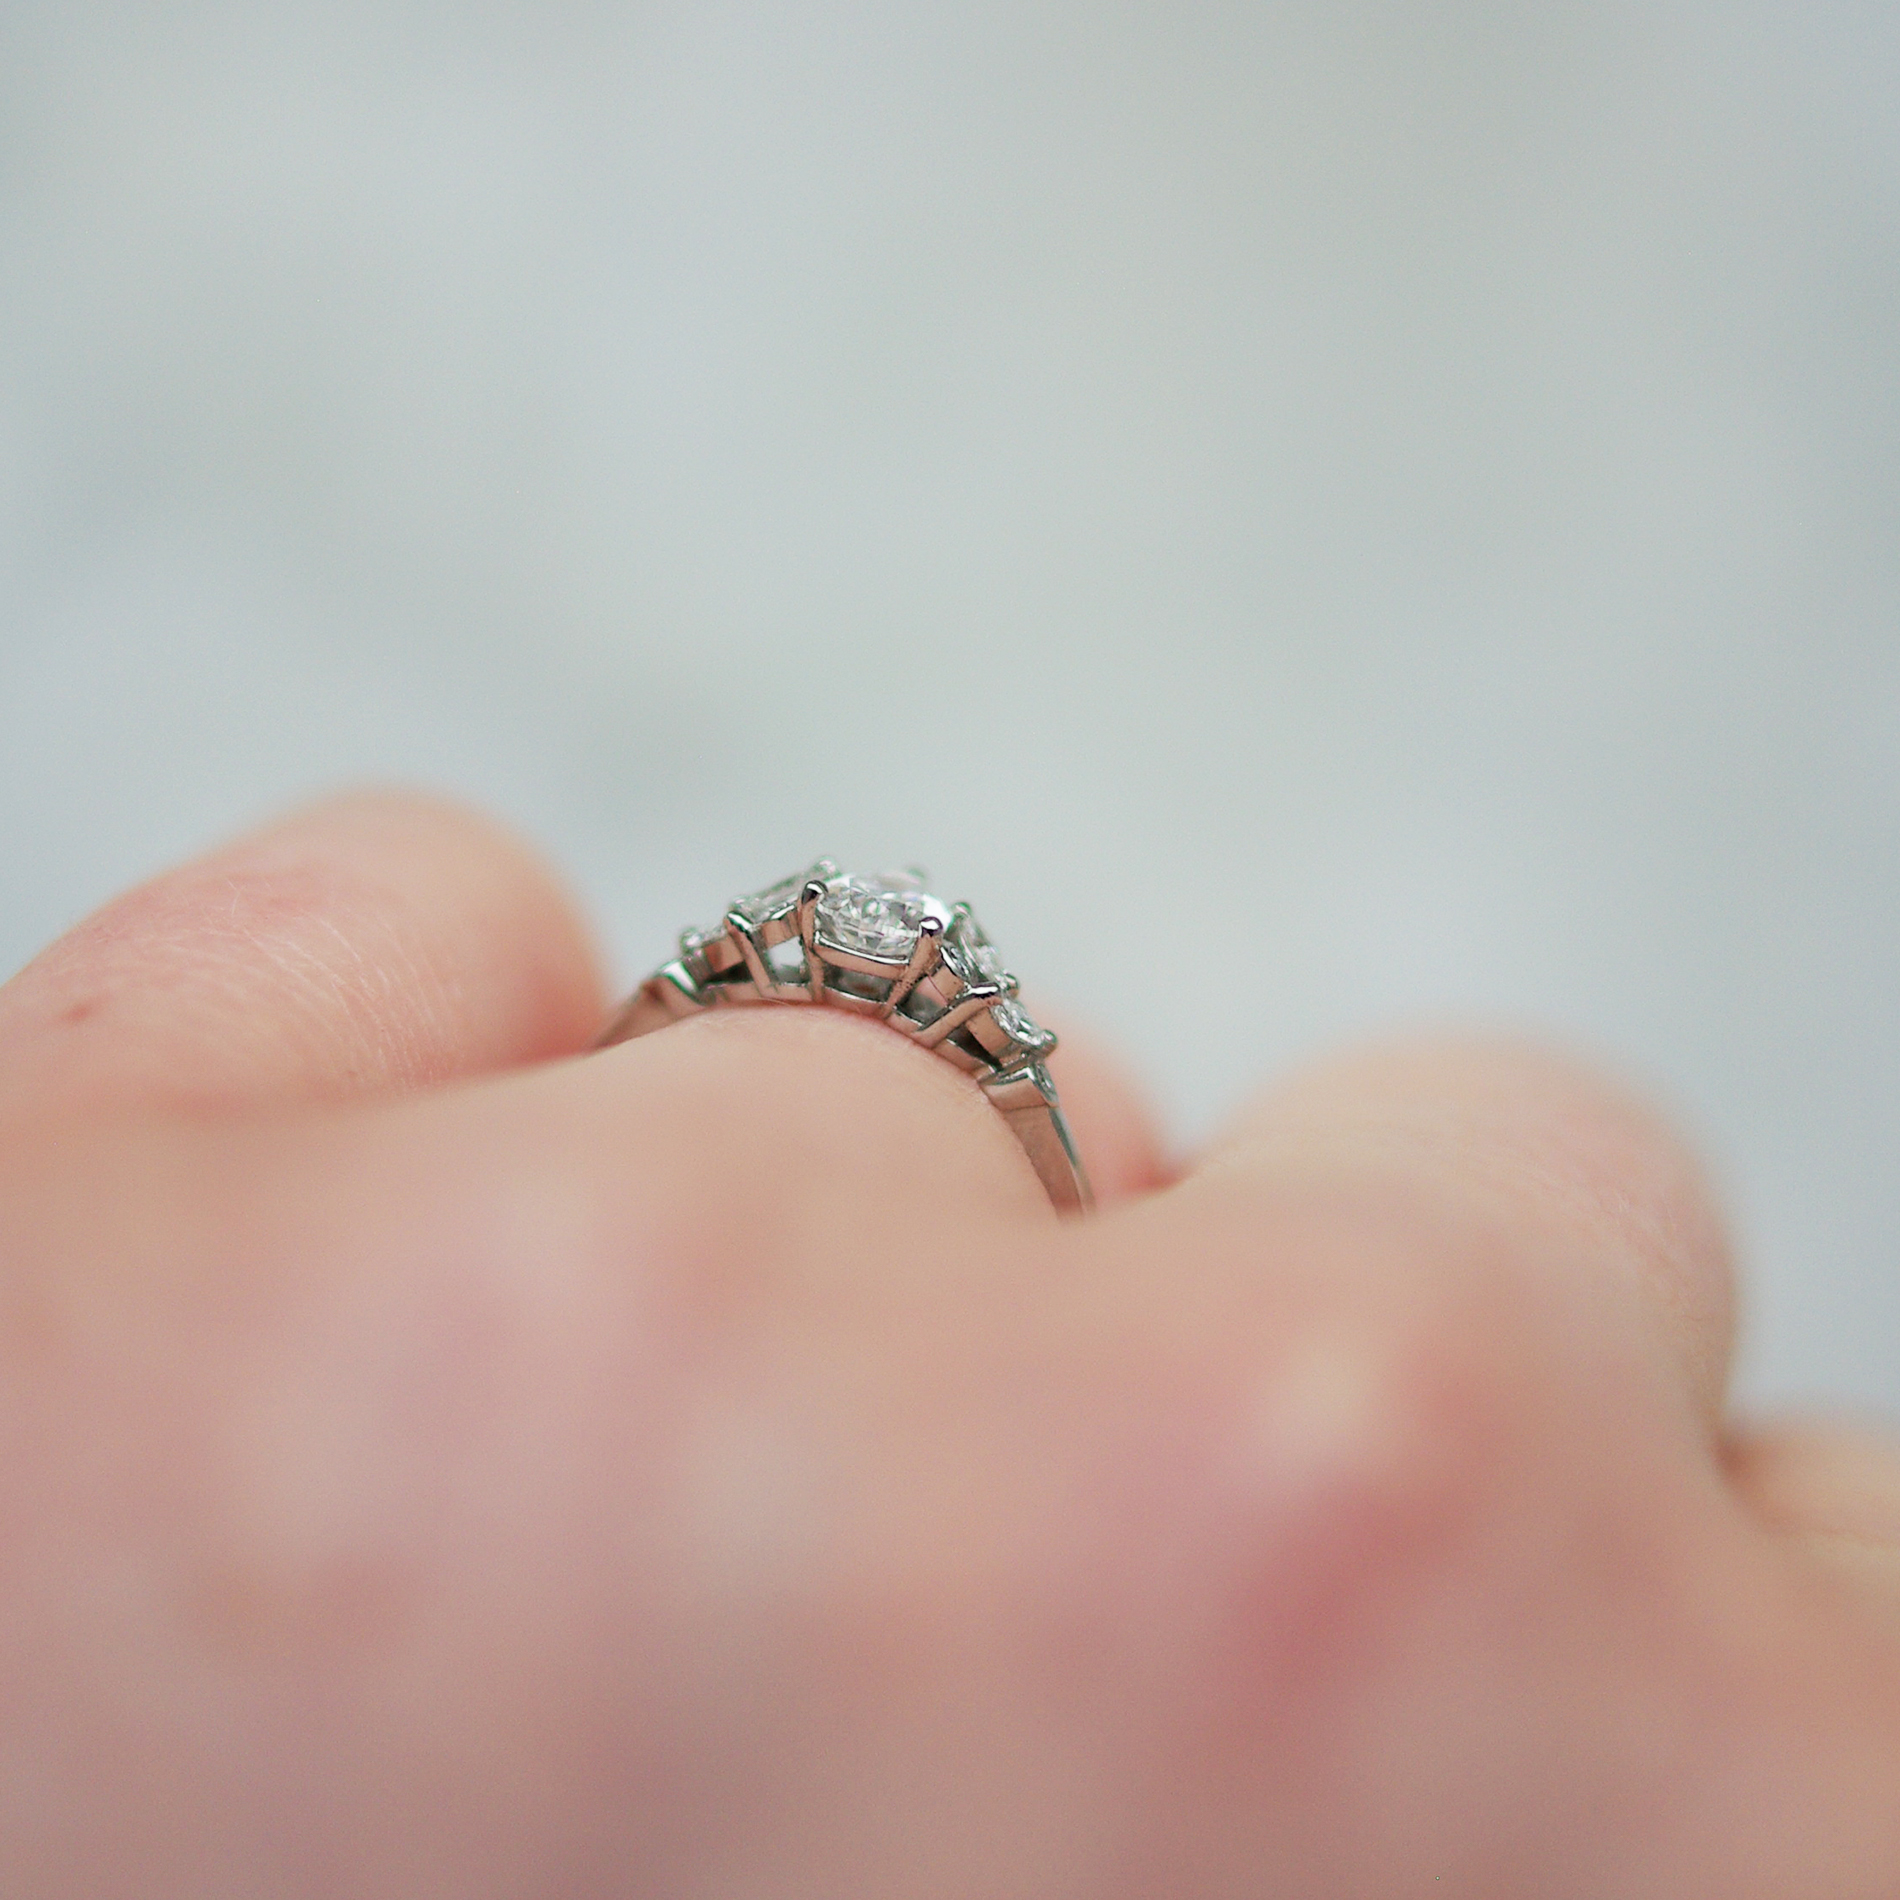 Pear Cut Diamond Engagement Ring in Platinum With Marquise And Round Shoulders